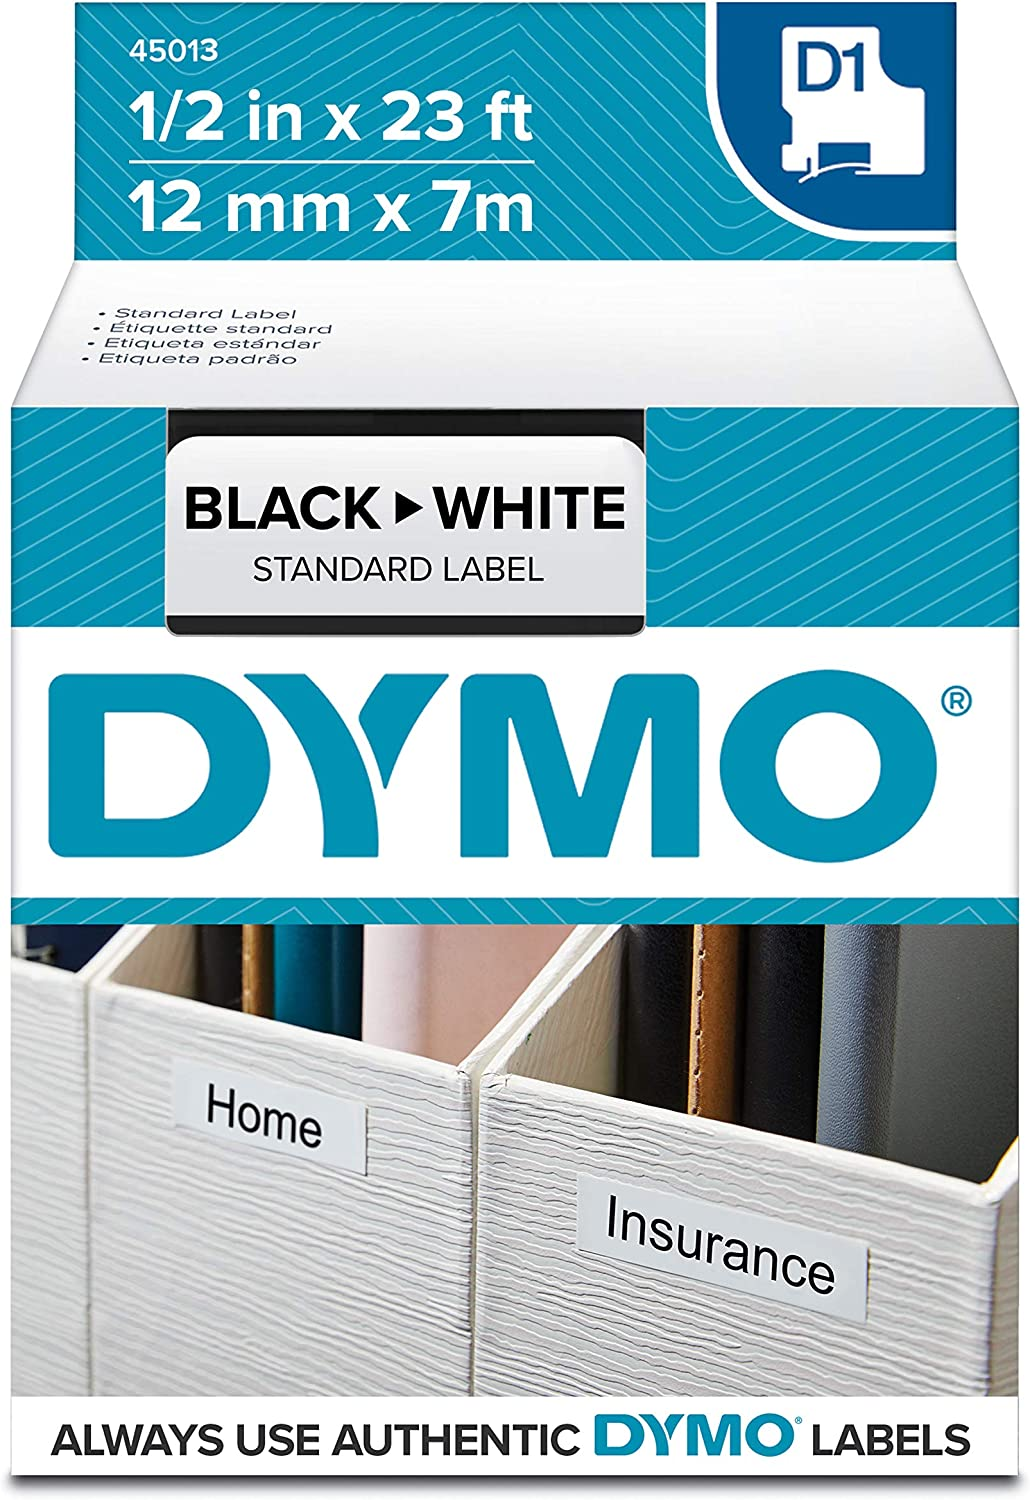 DYMO Authentic 1 Black Print on White Self-Adhesive 1761260 3//4 x 23 Roll DYMO D1 Labels